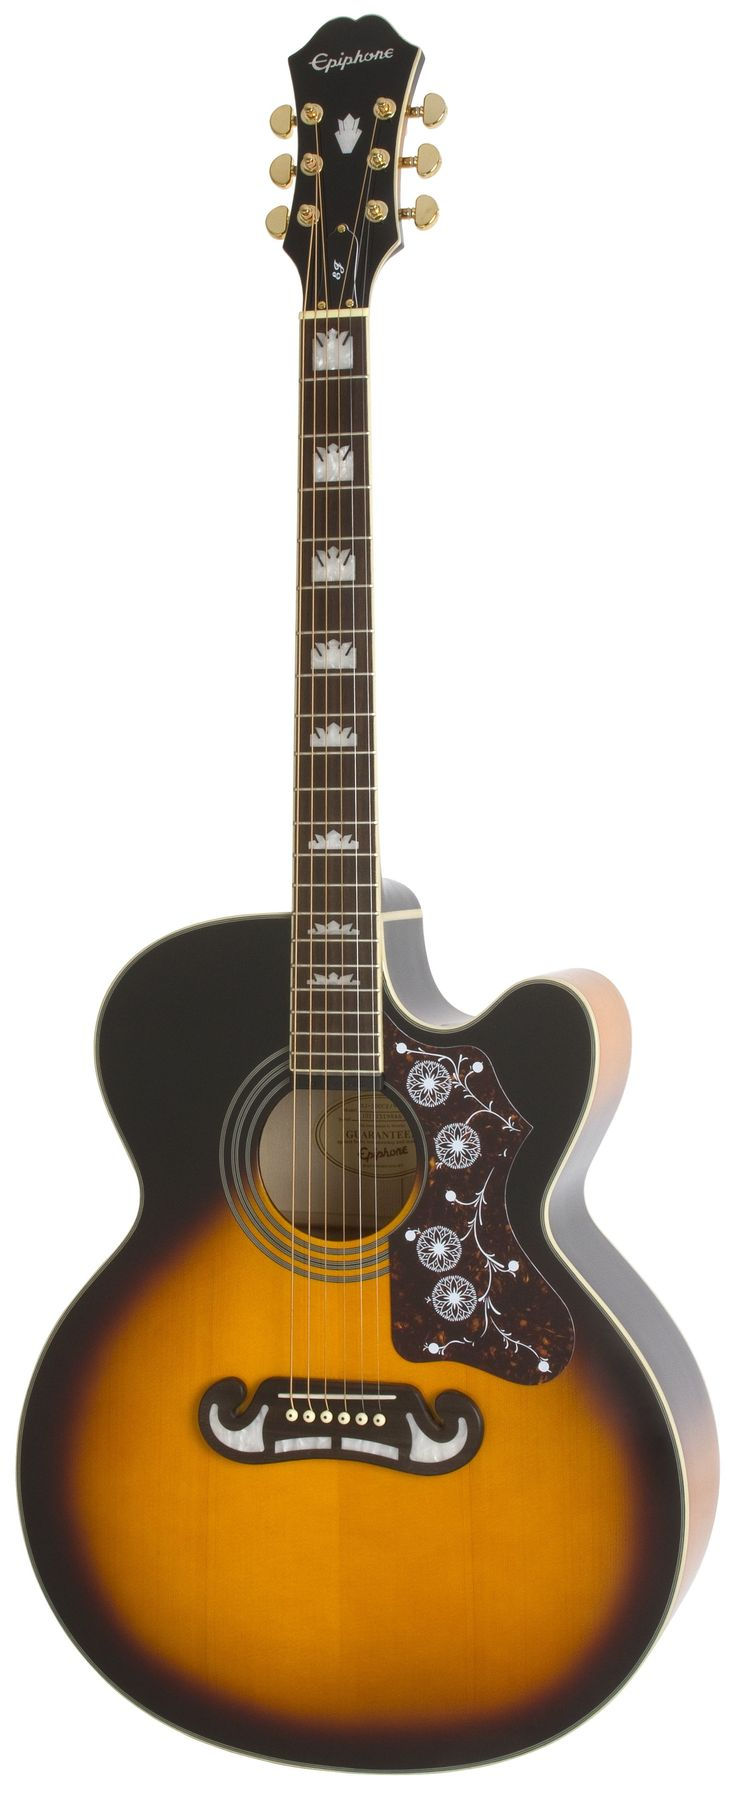 Epiphone EJ-200CE Electro Acoustic Guitar Vintage Sunburst #epiphone #acoustic #guitar The cheaper alternative to the Gibson J200 Standard